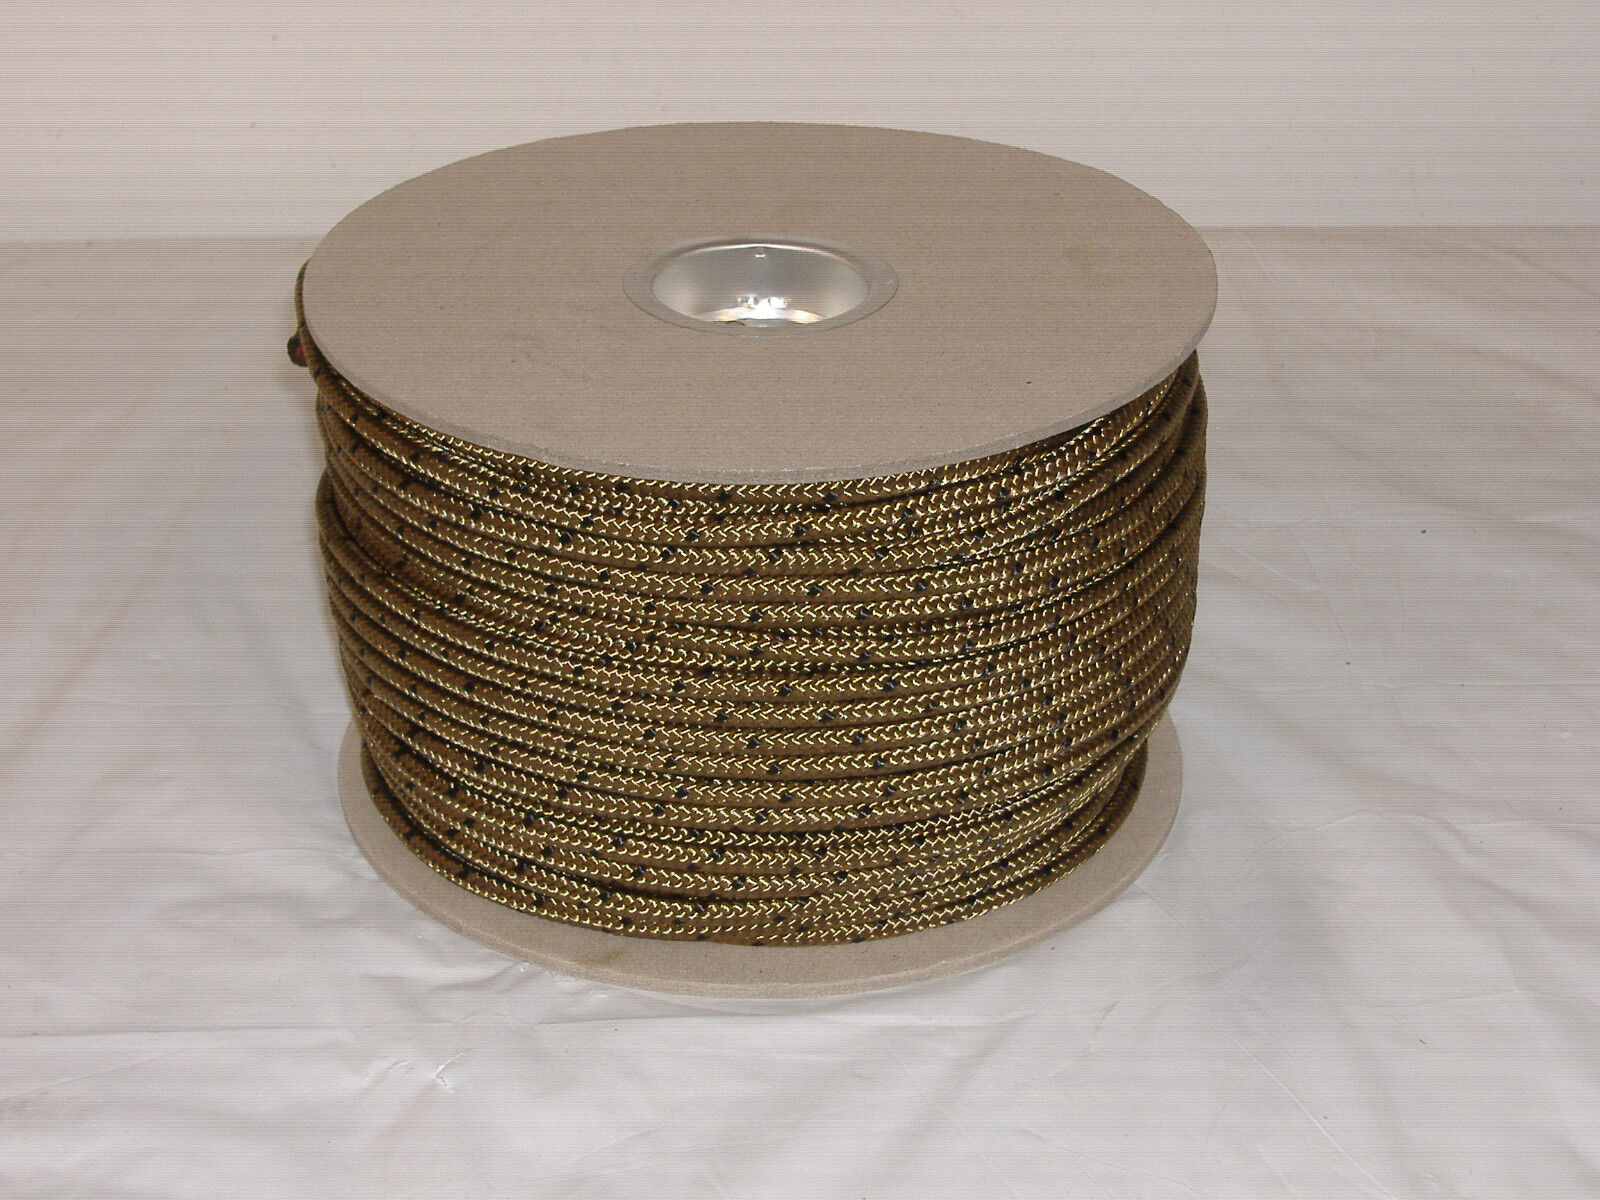 1 4  coyote  camo nylon braided rope 300 foot spool  high-quality merchandise and convenient, honest service